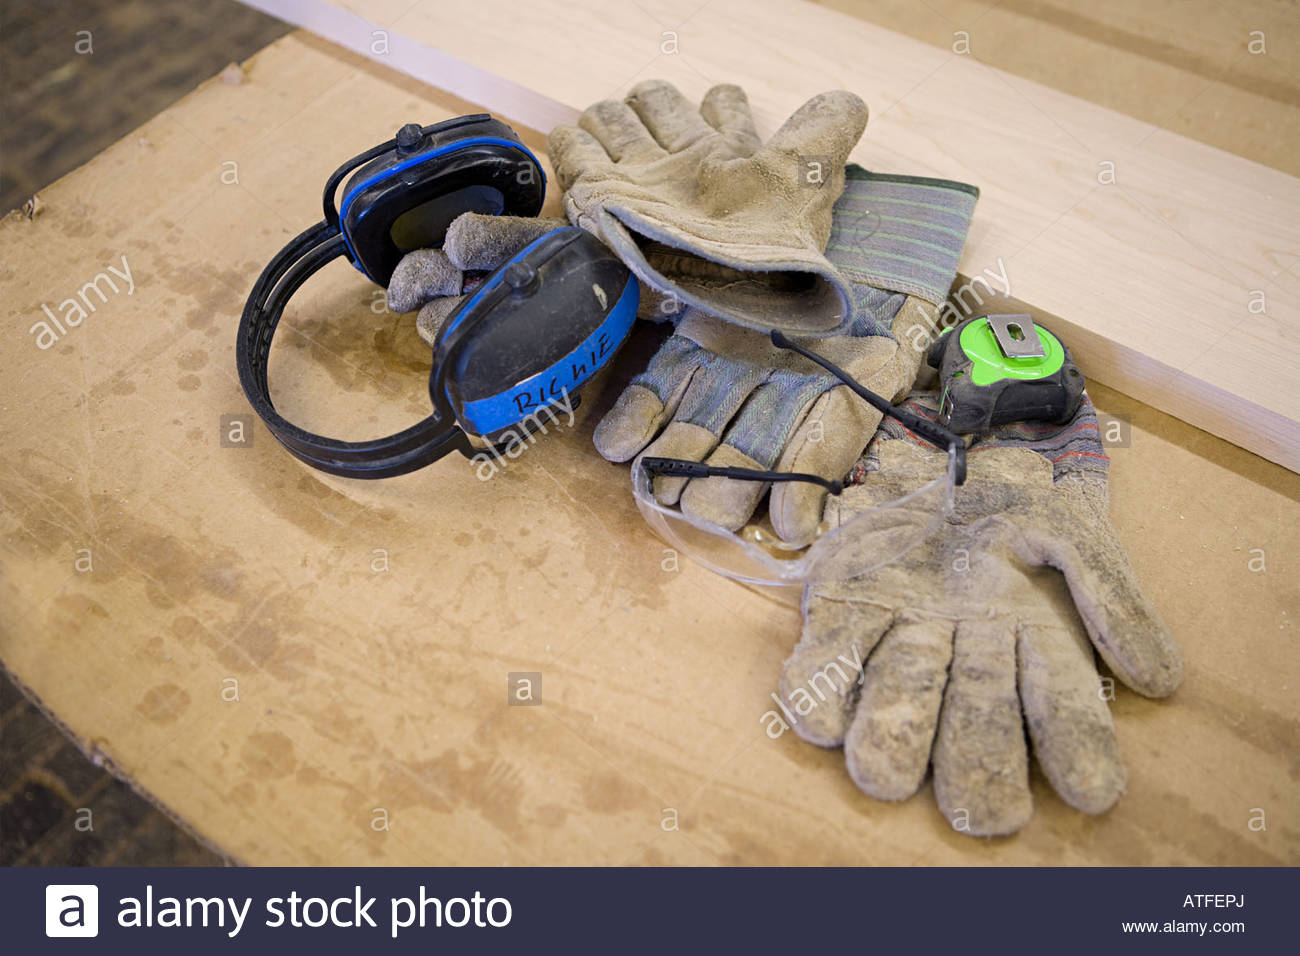 Protective clothing - Stock Image